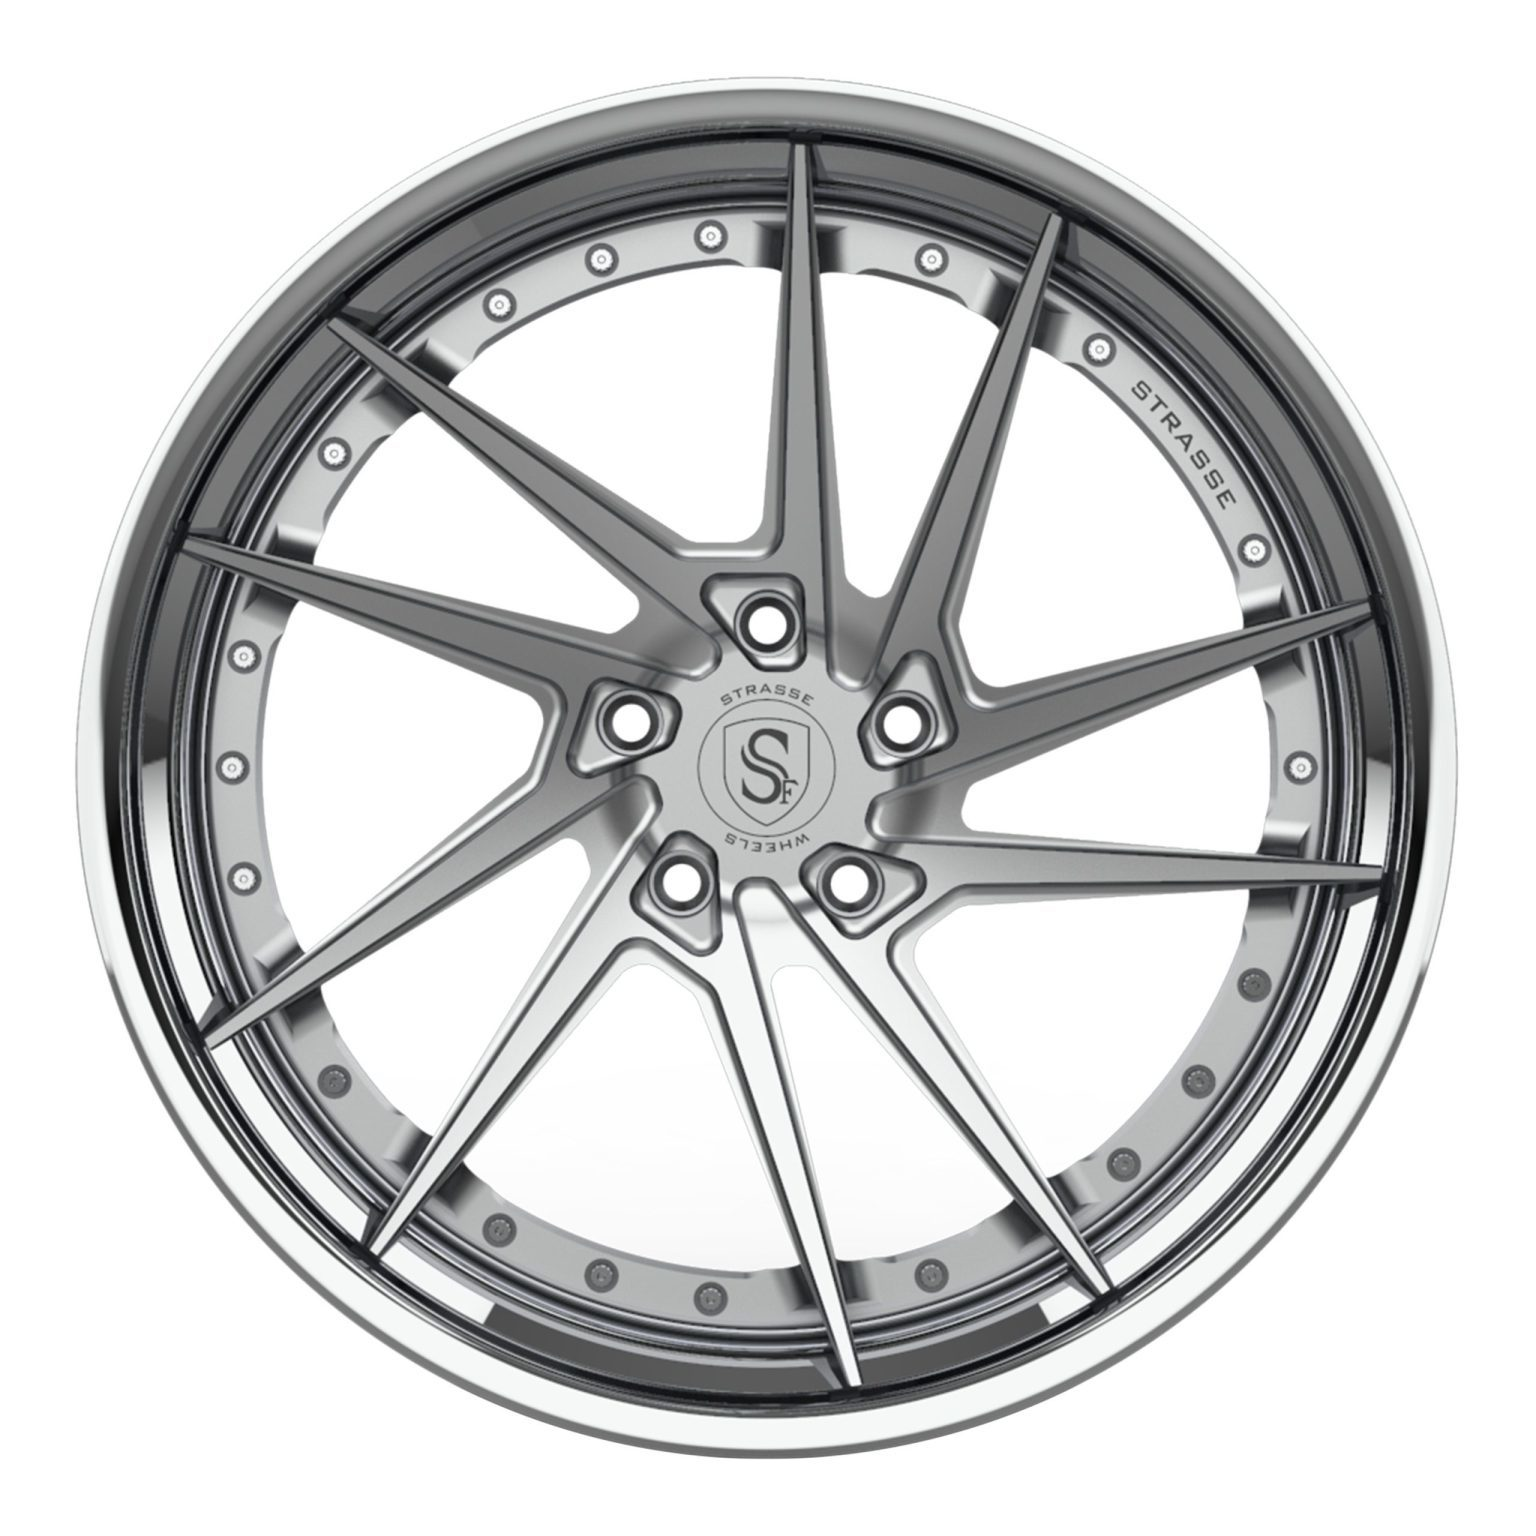 Strasse SV1T DEEP CONCAVE FS  forged  wheels